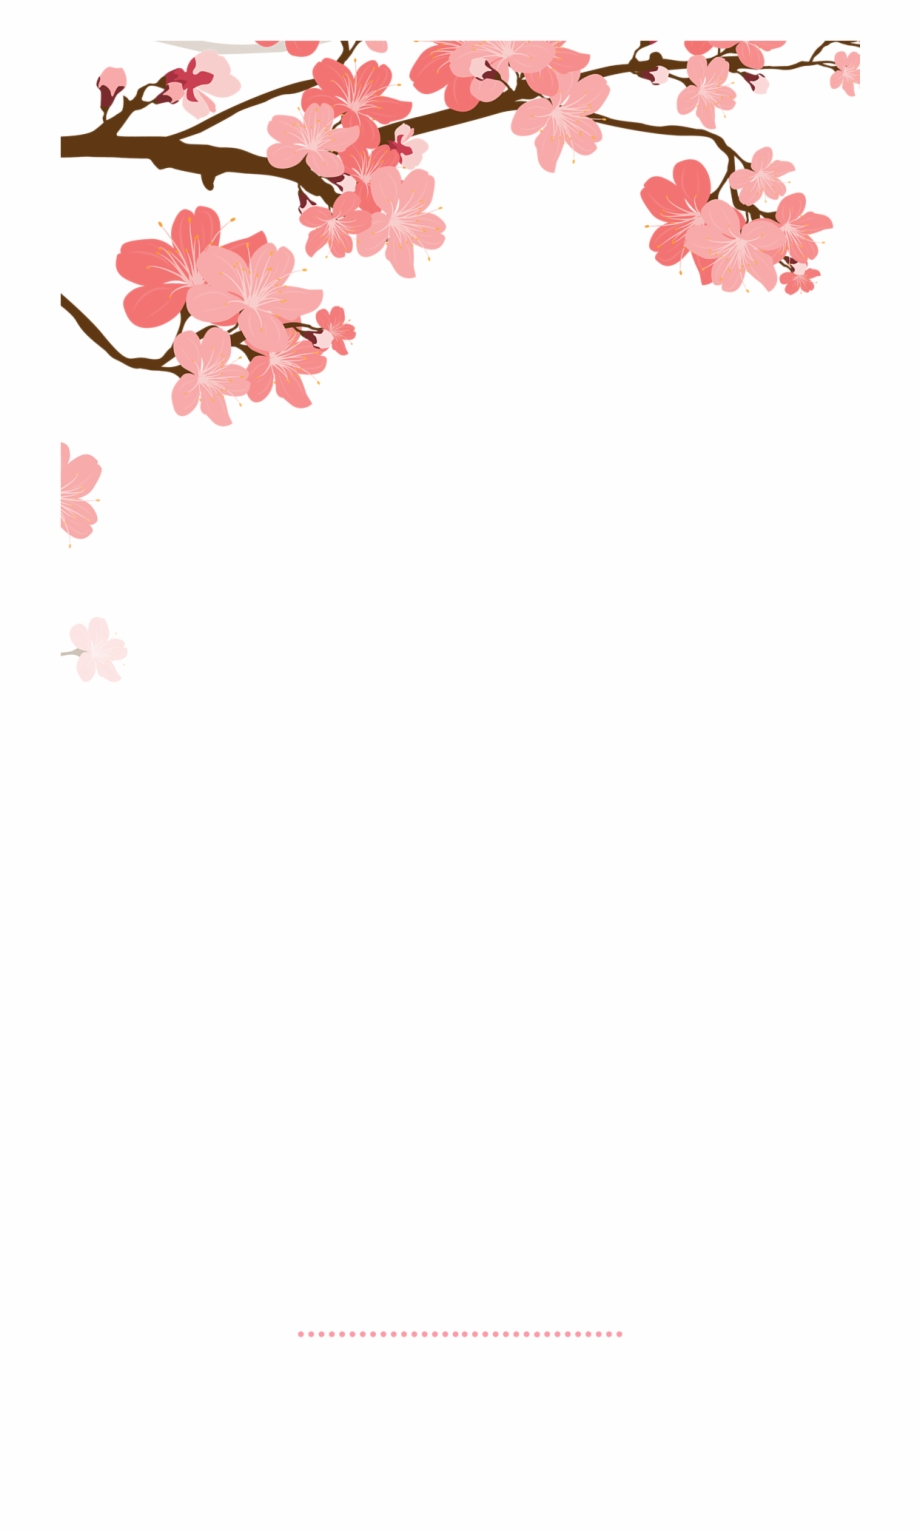 Wedding geofilter clipart graphic free stock Snapchat Filters Wedding Transpa Png Clipart Free - Snap ... graphic free stock